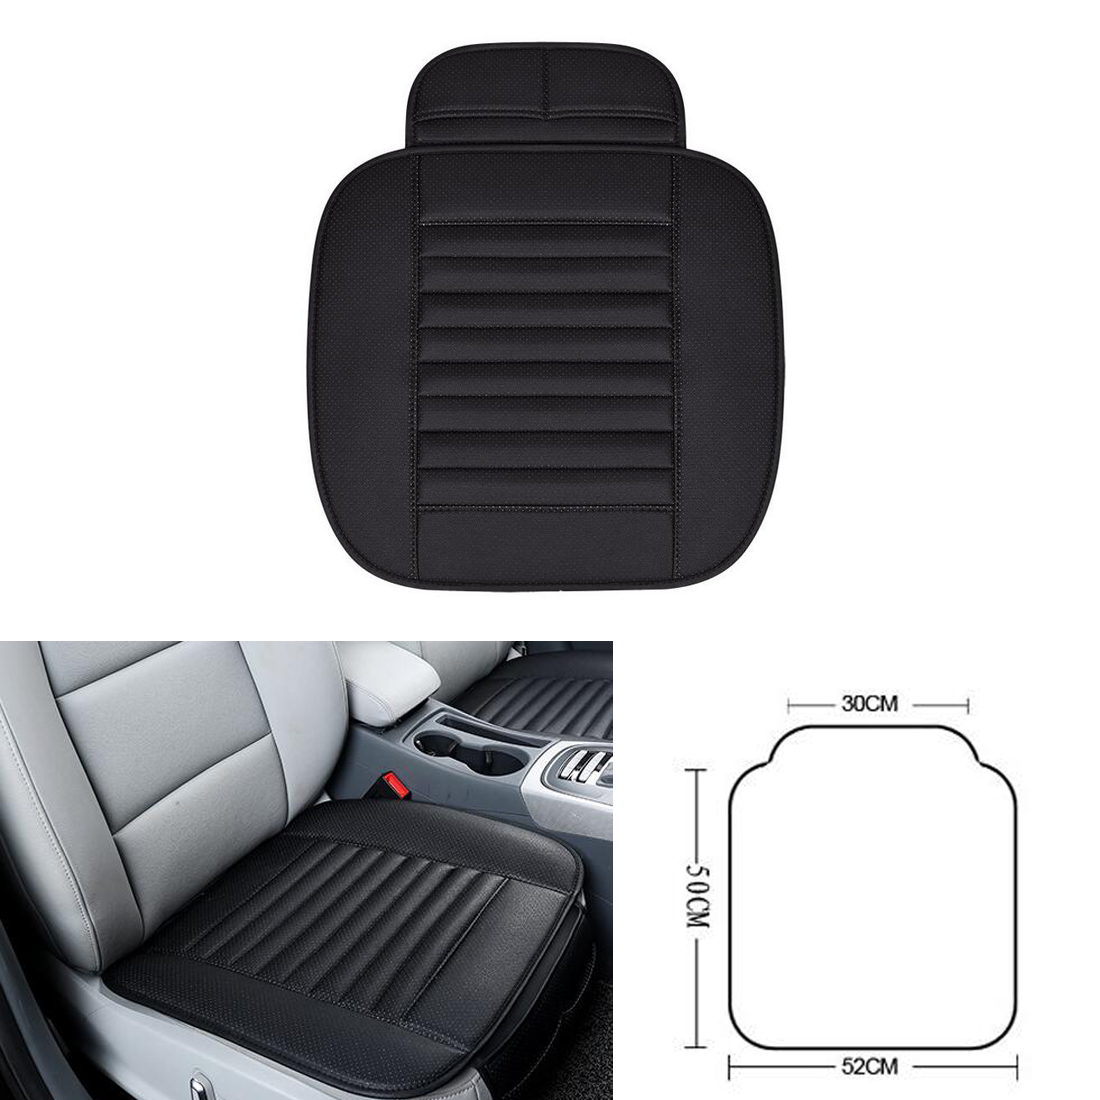 Dongzhen 1X font b Car b font Seat Covers Protector Driver Chair Pad Breathable font b